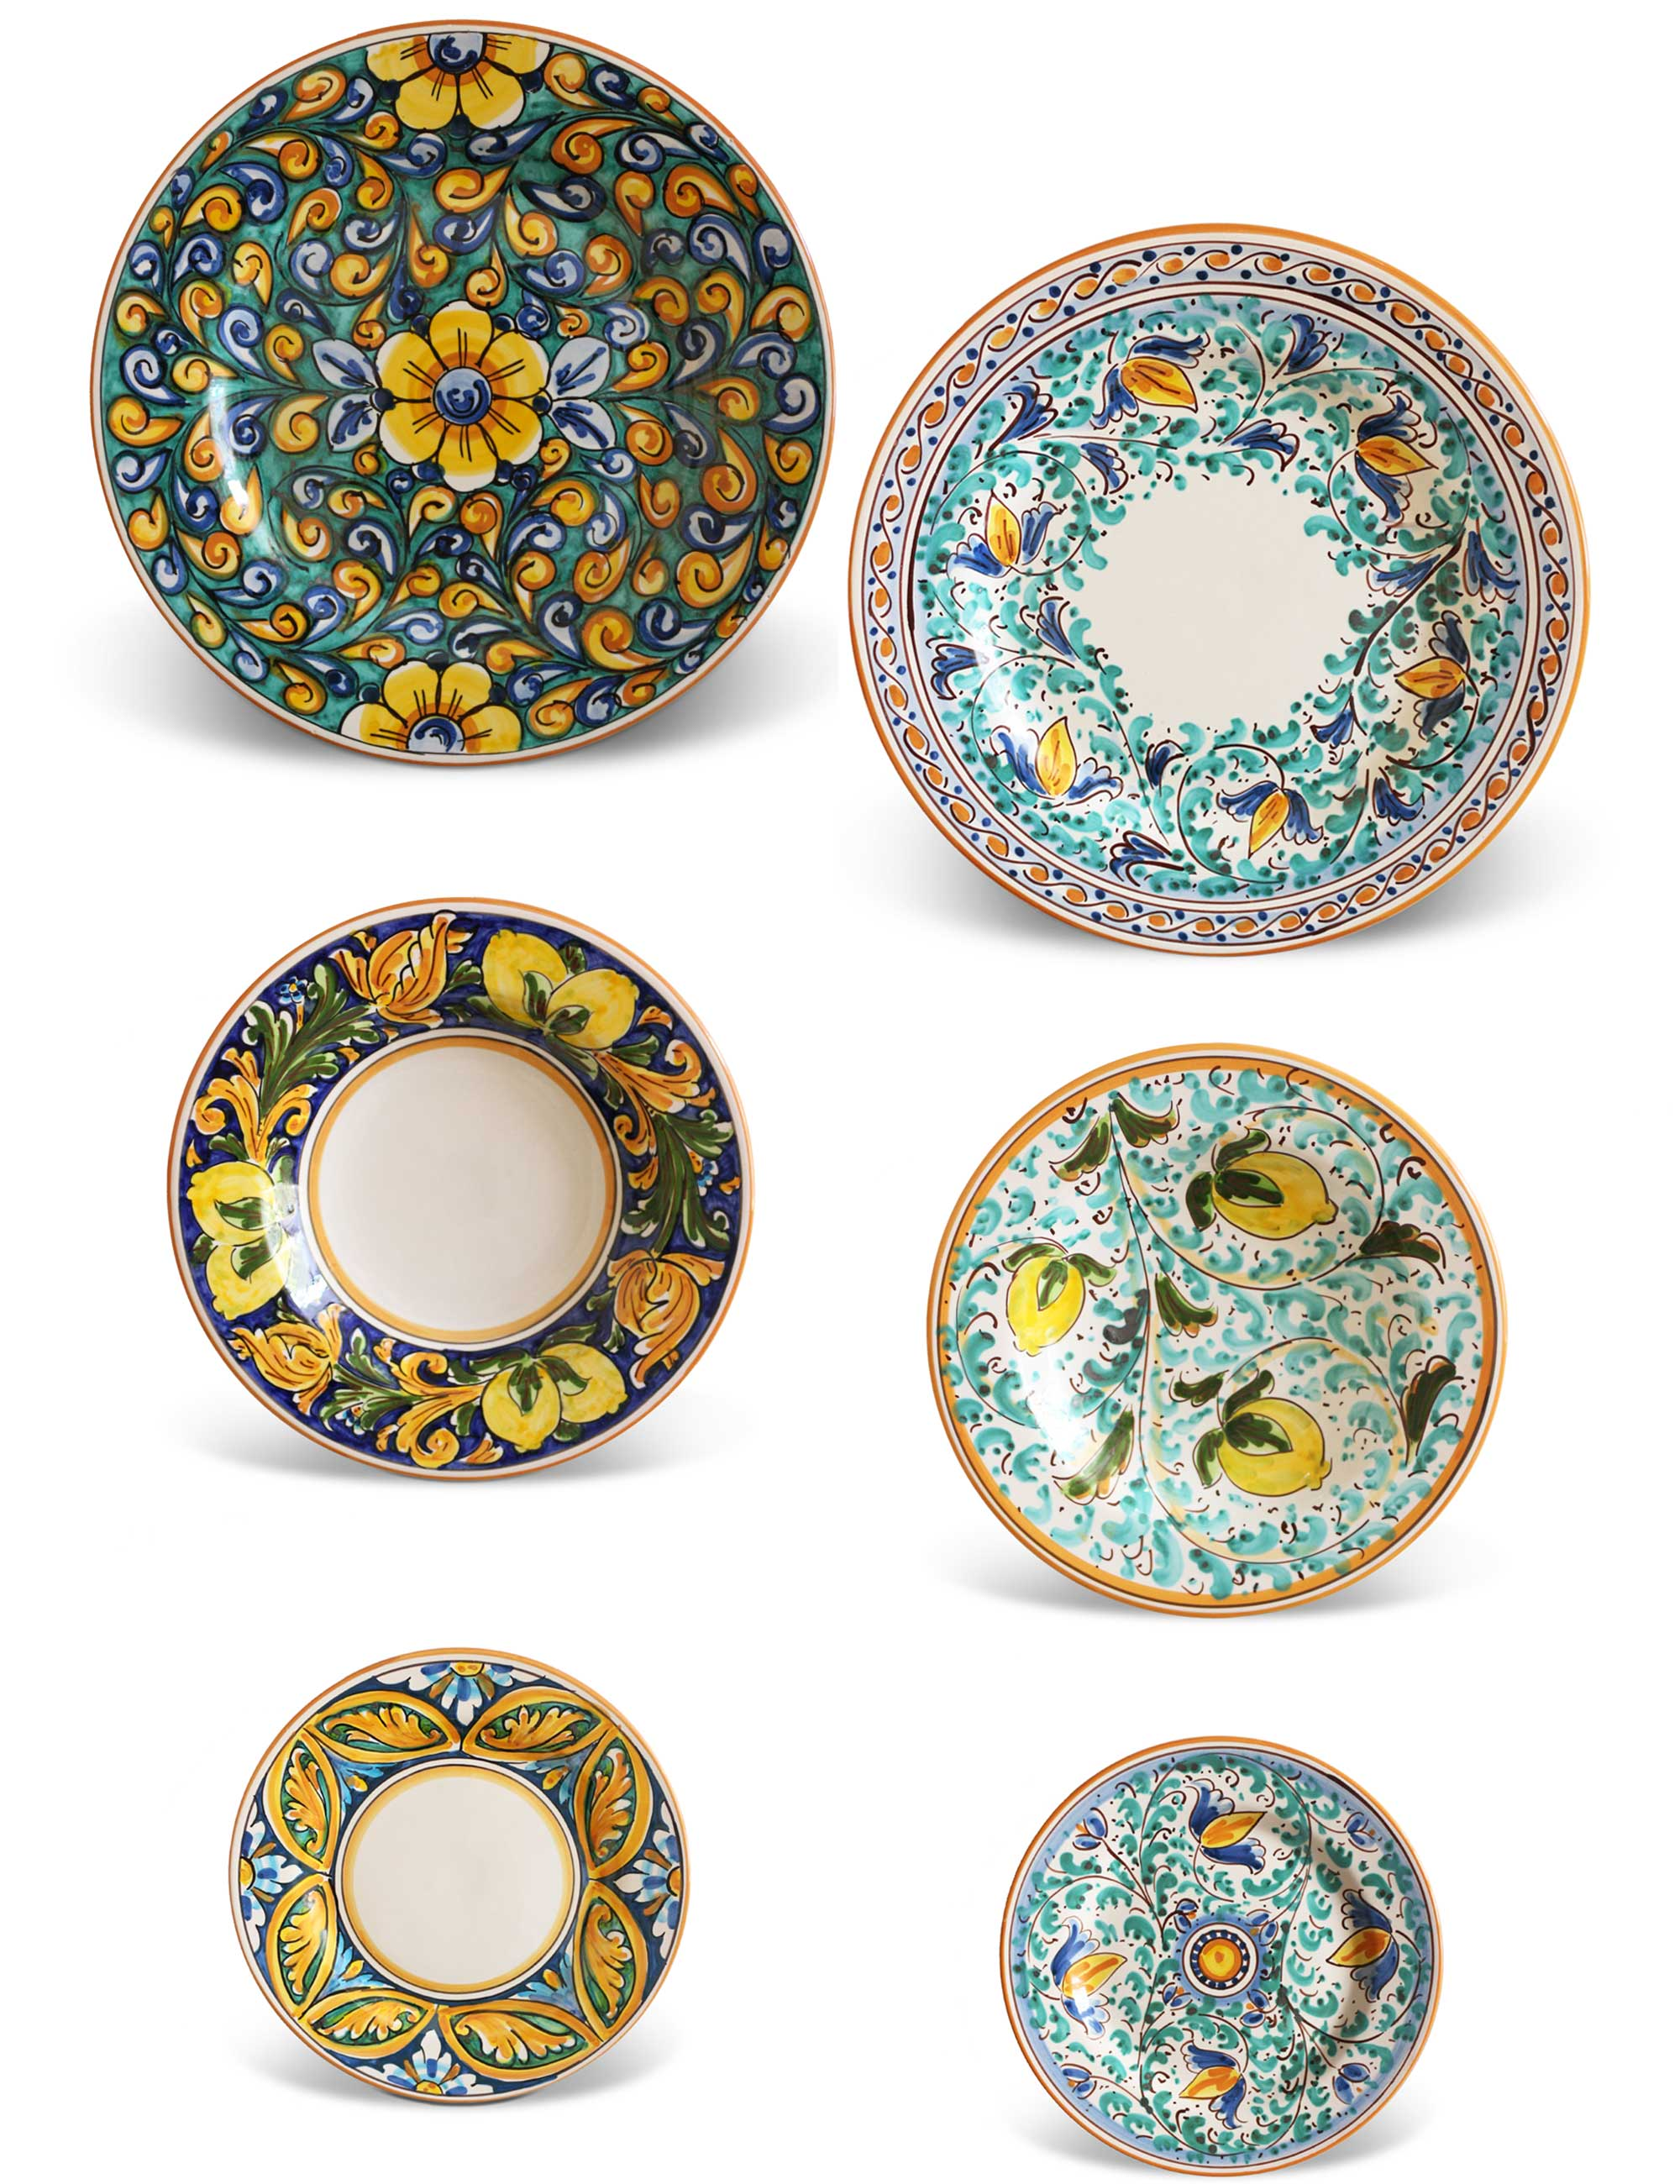 caltagirone ceramic plates tablewear set two people-Limiuni  sc 1 st  Ceramiche Caltagirone Maremoro & Caltagirone ceramic plates | Set LIMIUNI | Maremoro